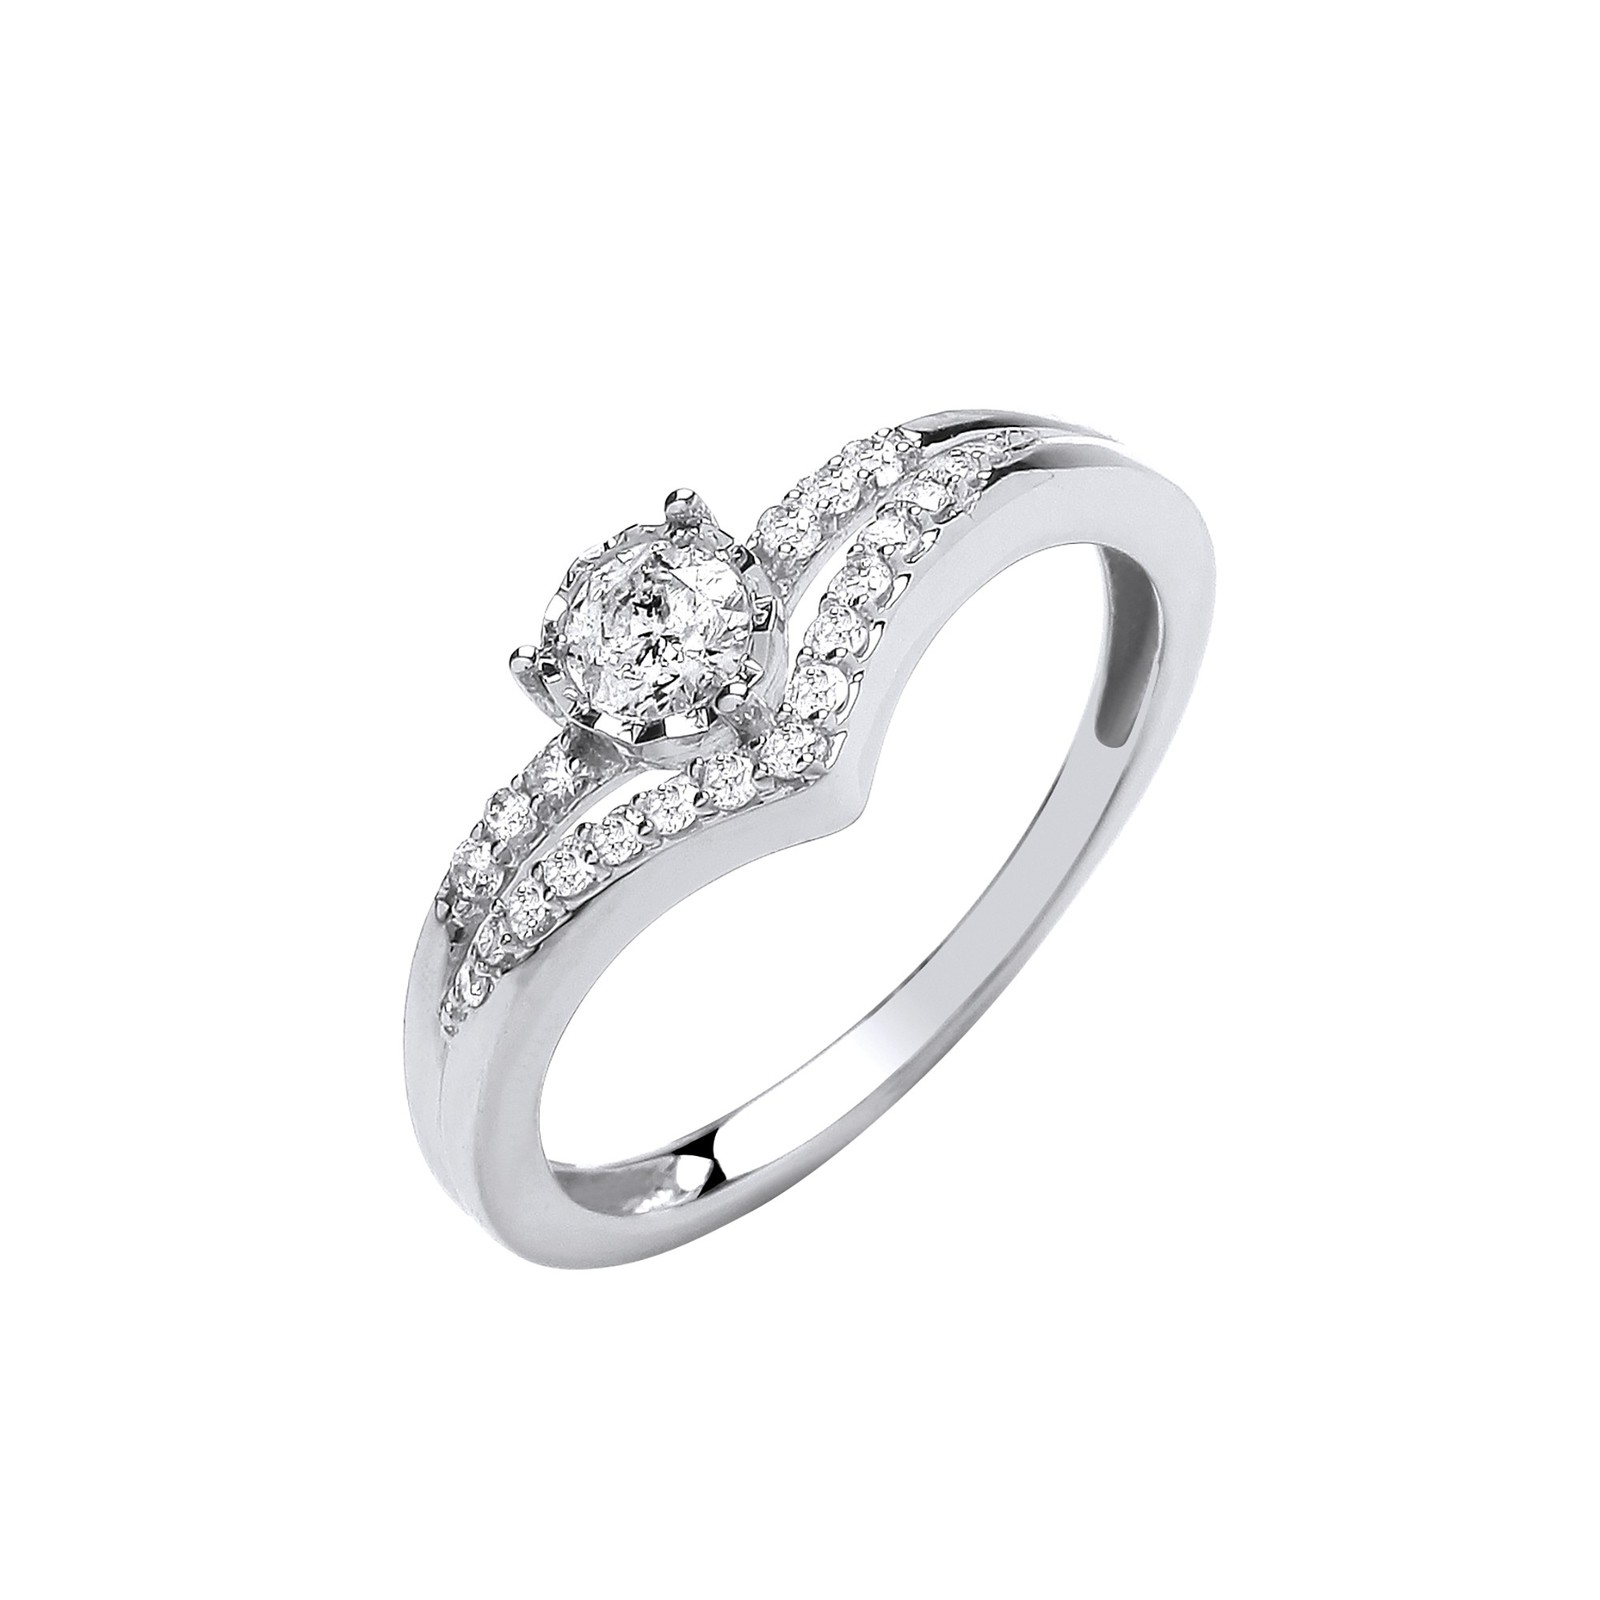 9ct White gold 0.33st Split shank engagement ring